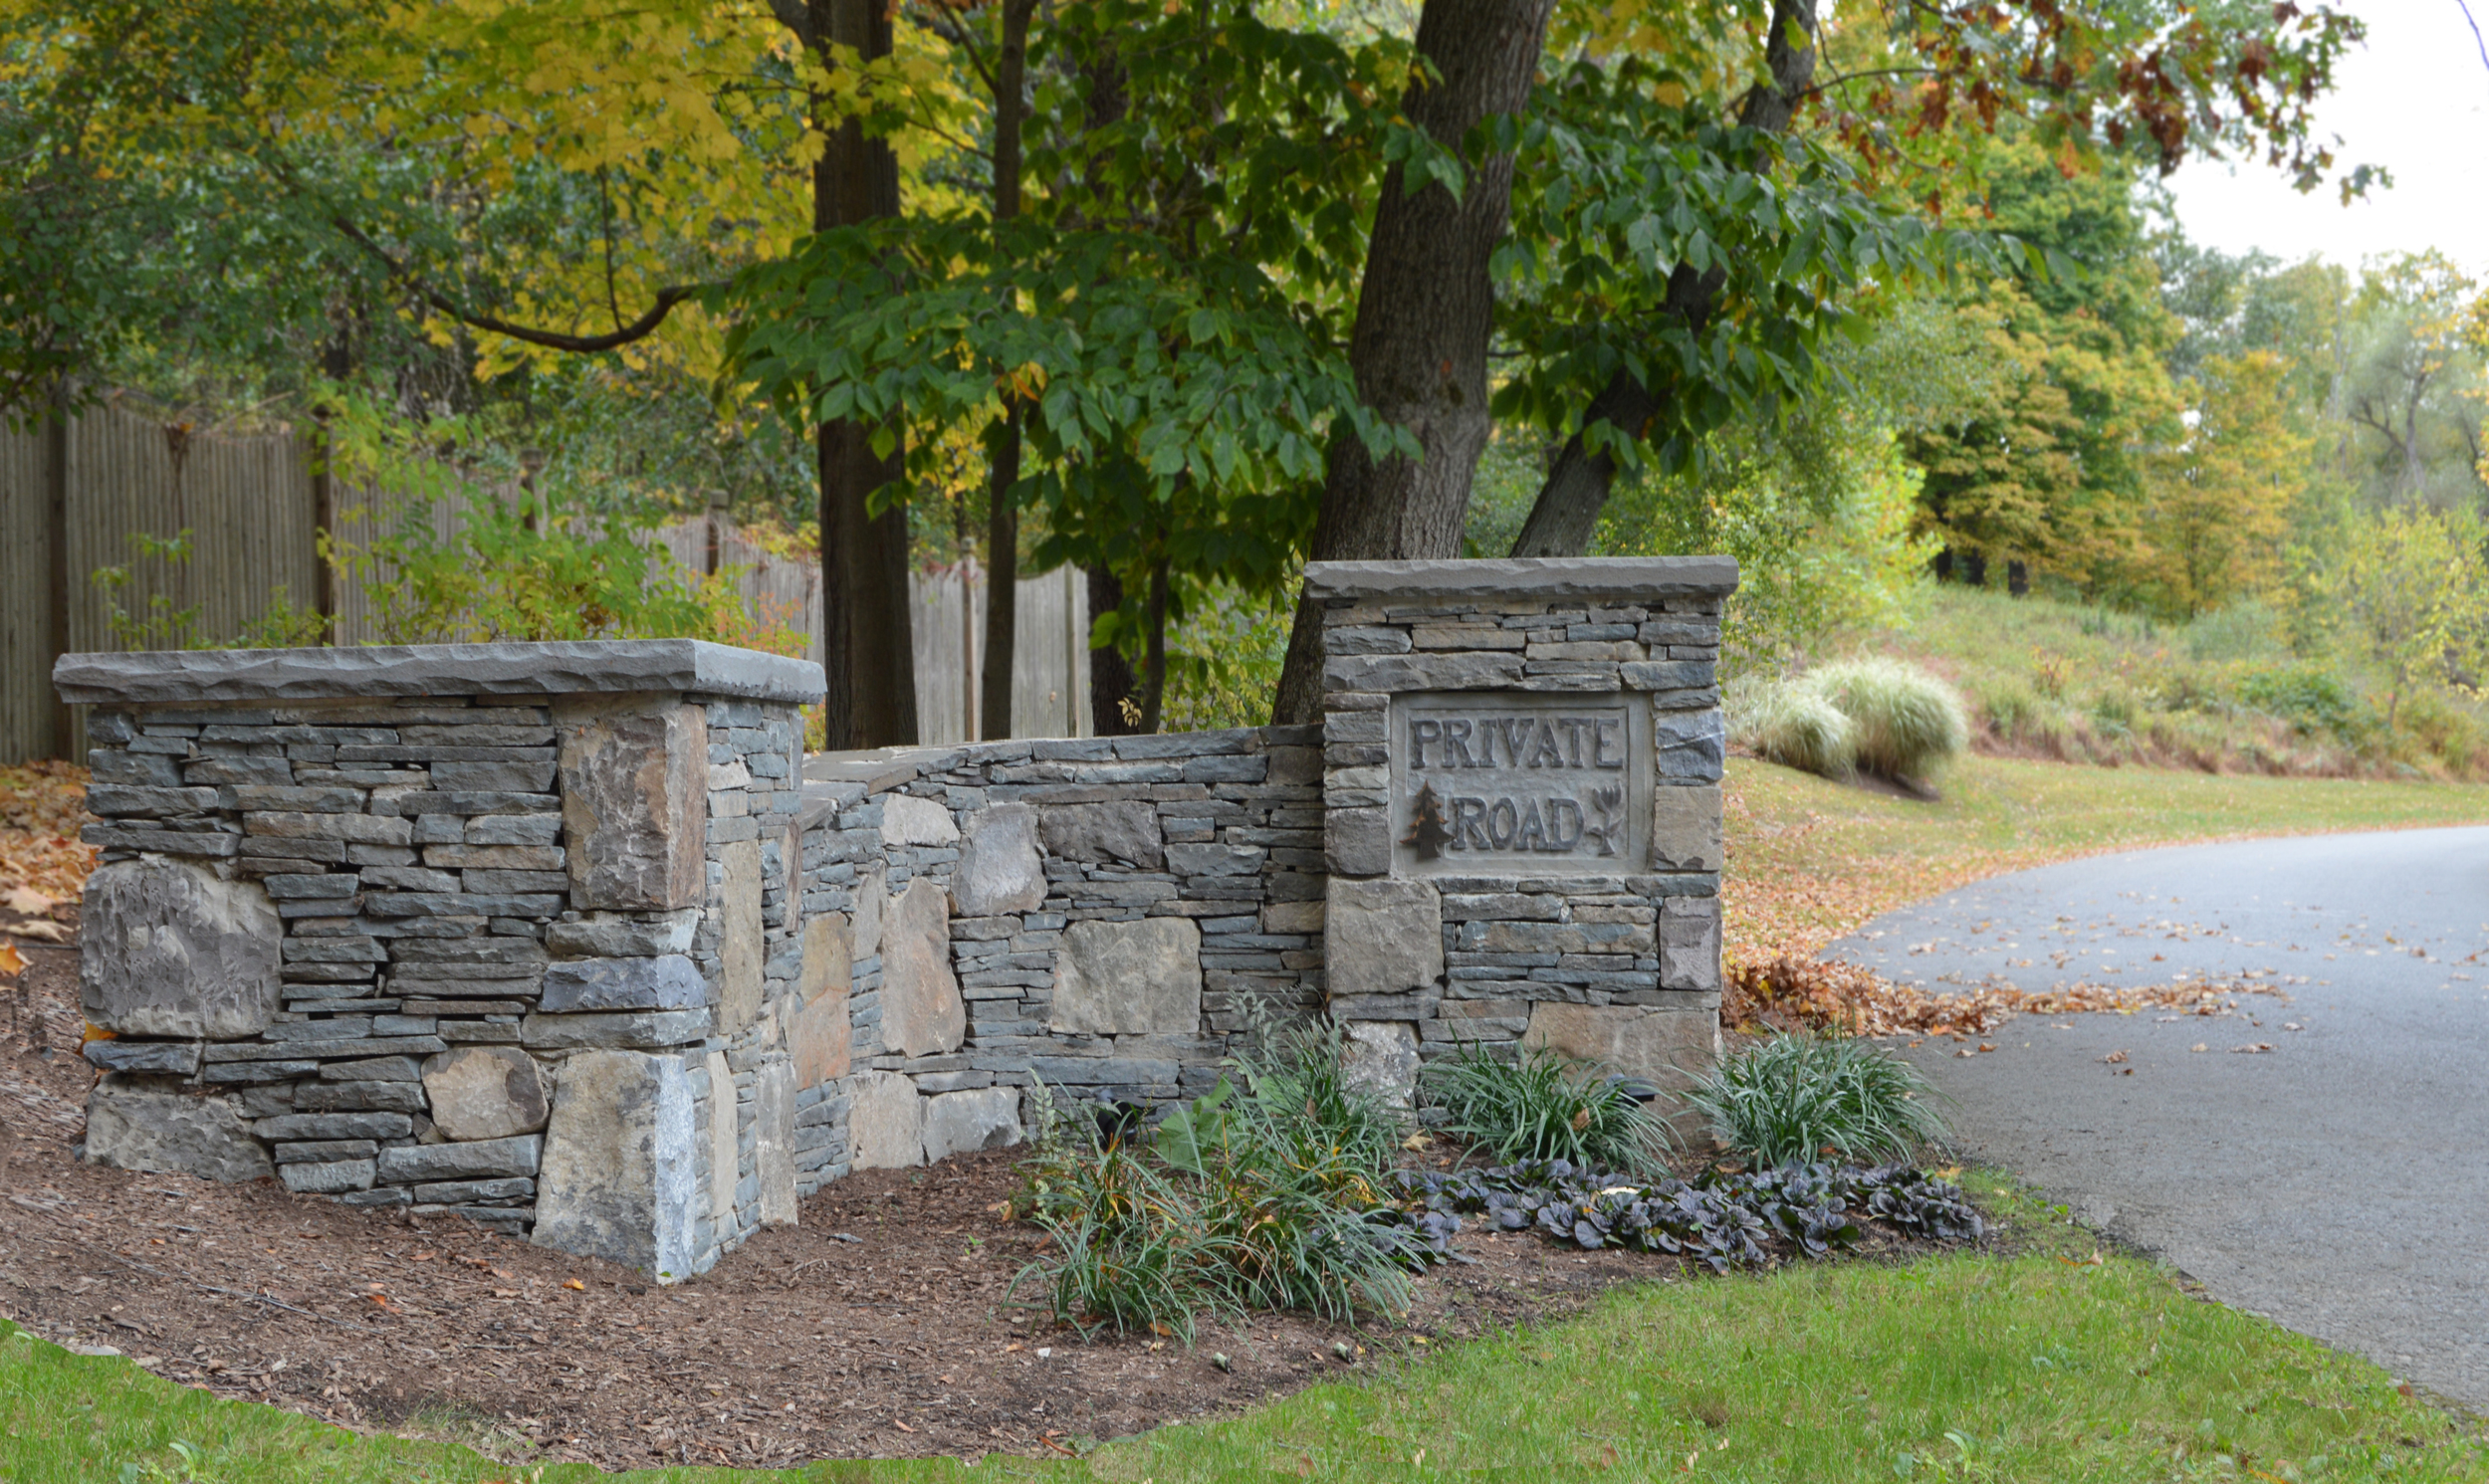 Welcome Home, Natural Stone!<br>Hudson Valley Landscape ... on entryway stone ideas, front porch stone ideas, exterior stone ideas, fence stone ideas, kitchen stone ideas, outdoor stone ideas, house stone ideas, dining room stone ideas, shower stone ideas, walkway stone ideas, pool stone ideas, wall stone ideas, basement stone ideas, bathroom stone ideas, landscaping stone ideas, painting stone ideas, fireplace stone ideas, hot tub stone ideas, bathtub stone ideas, garden stone ideas,